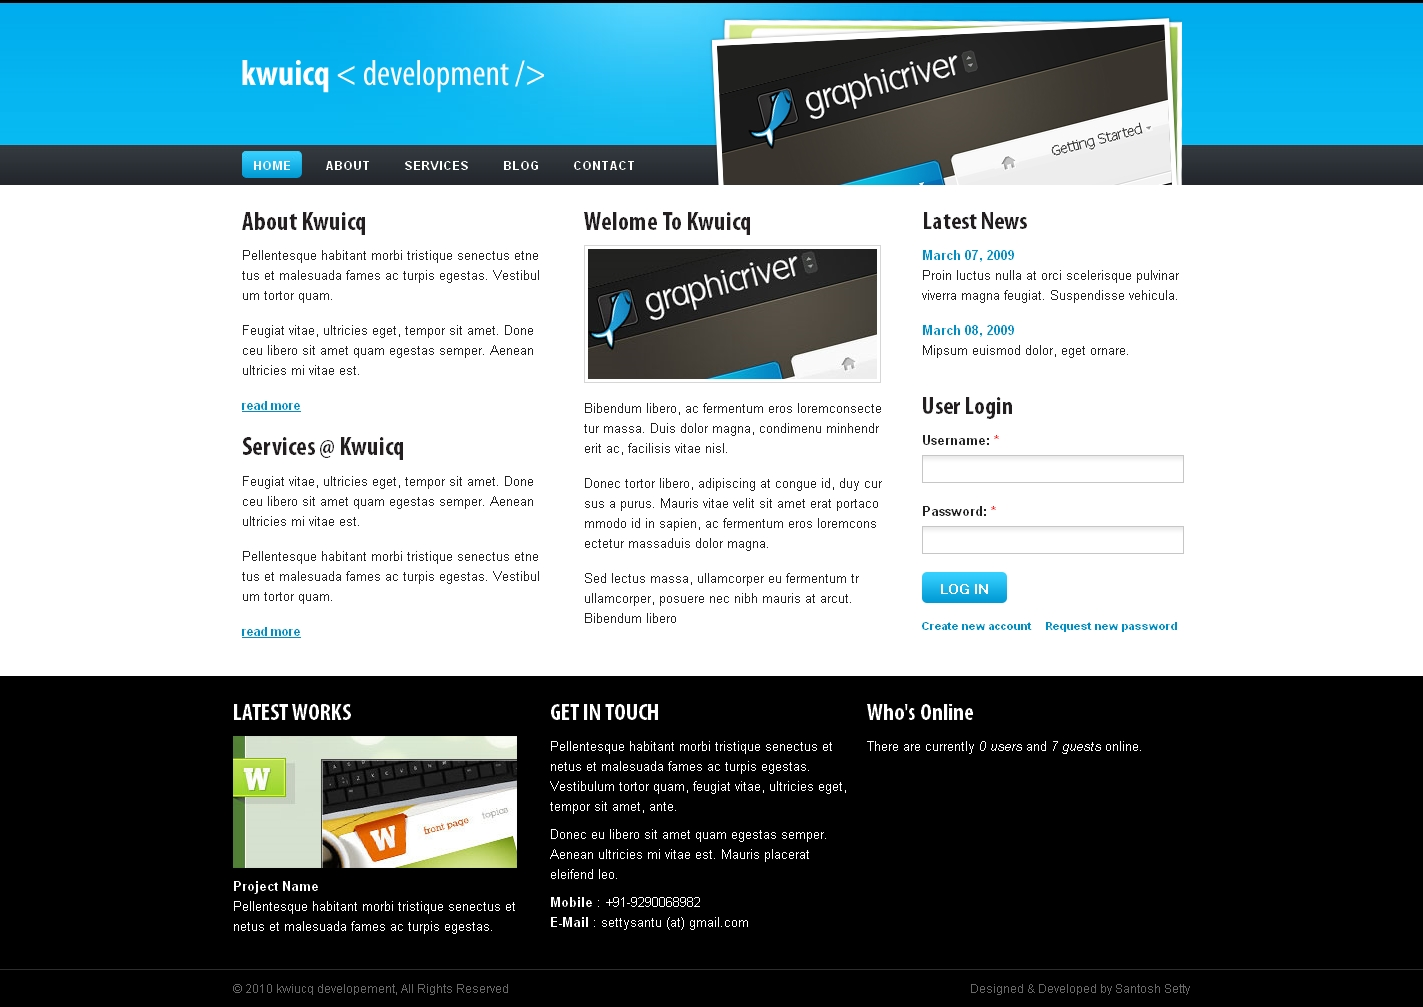 Free Download Kwuicq Drupal 6 Corporate Blue Theme Nulled Latest Version